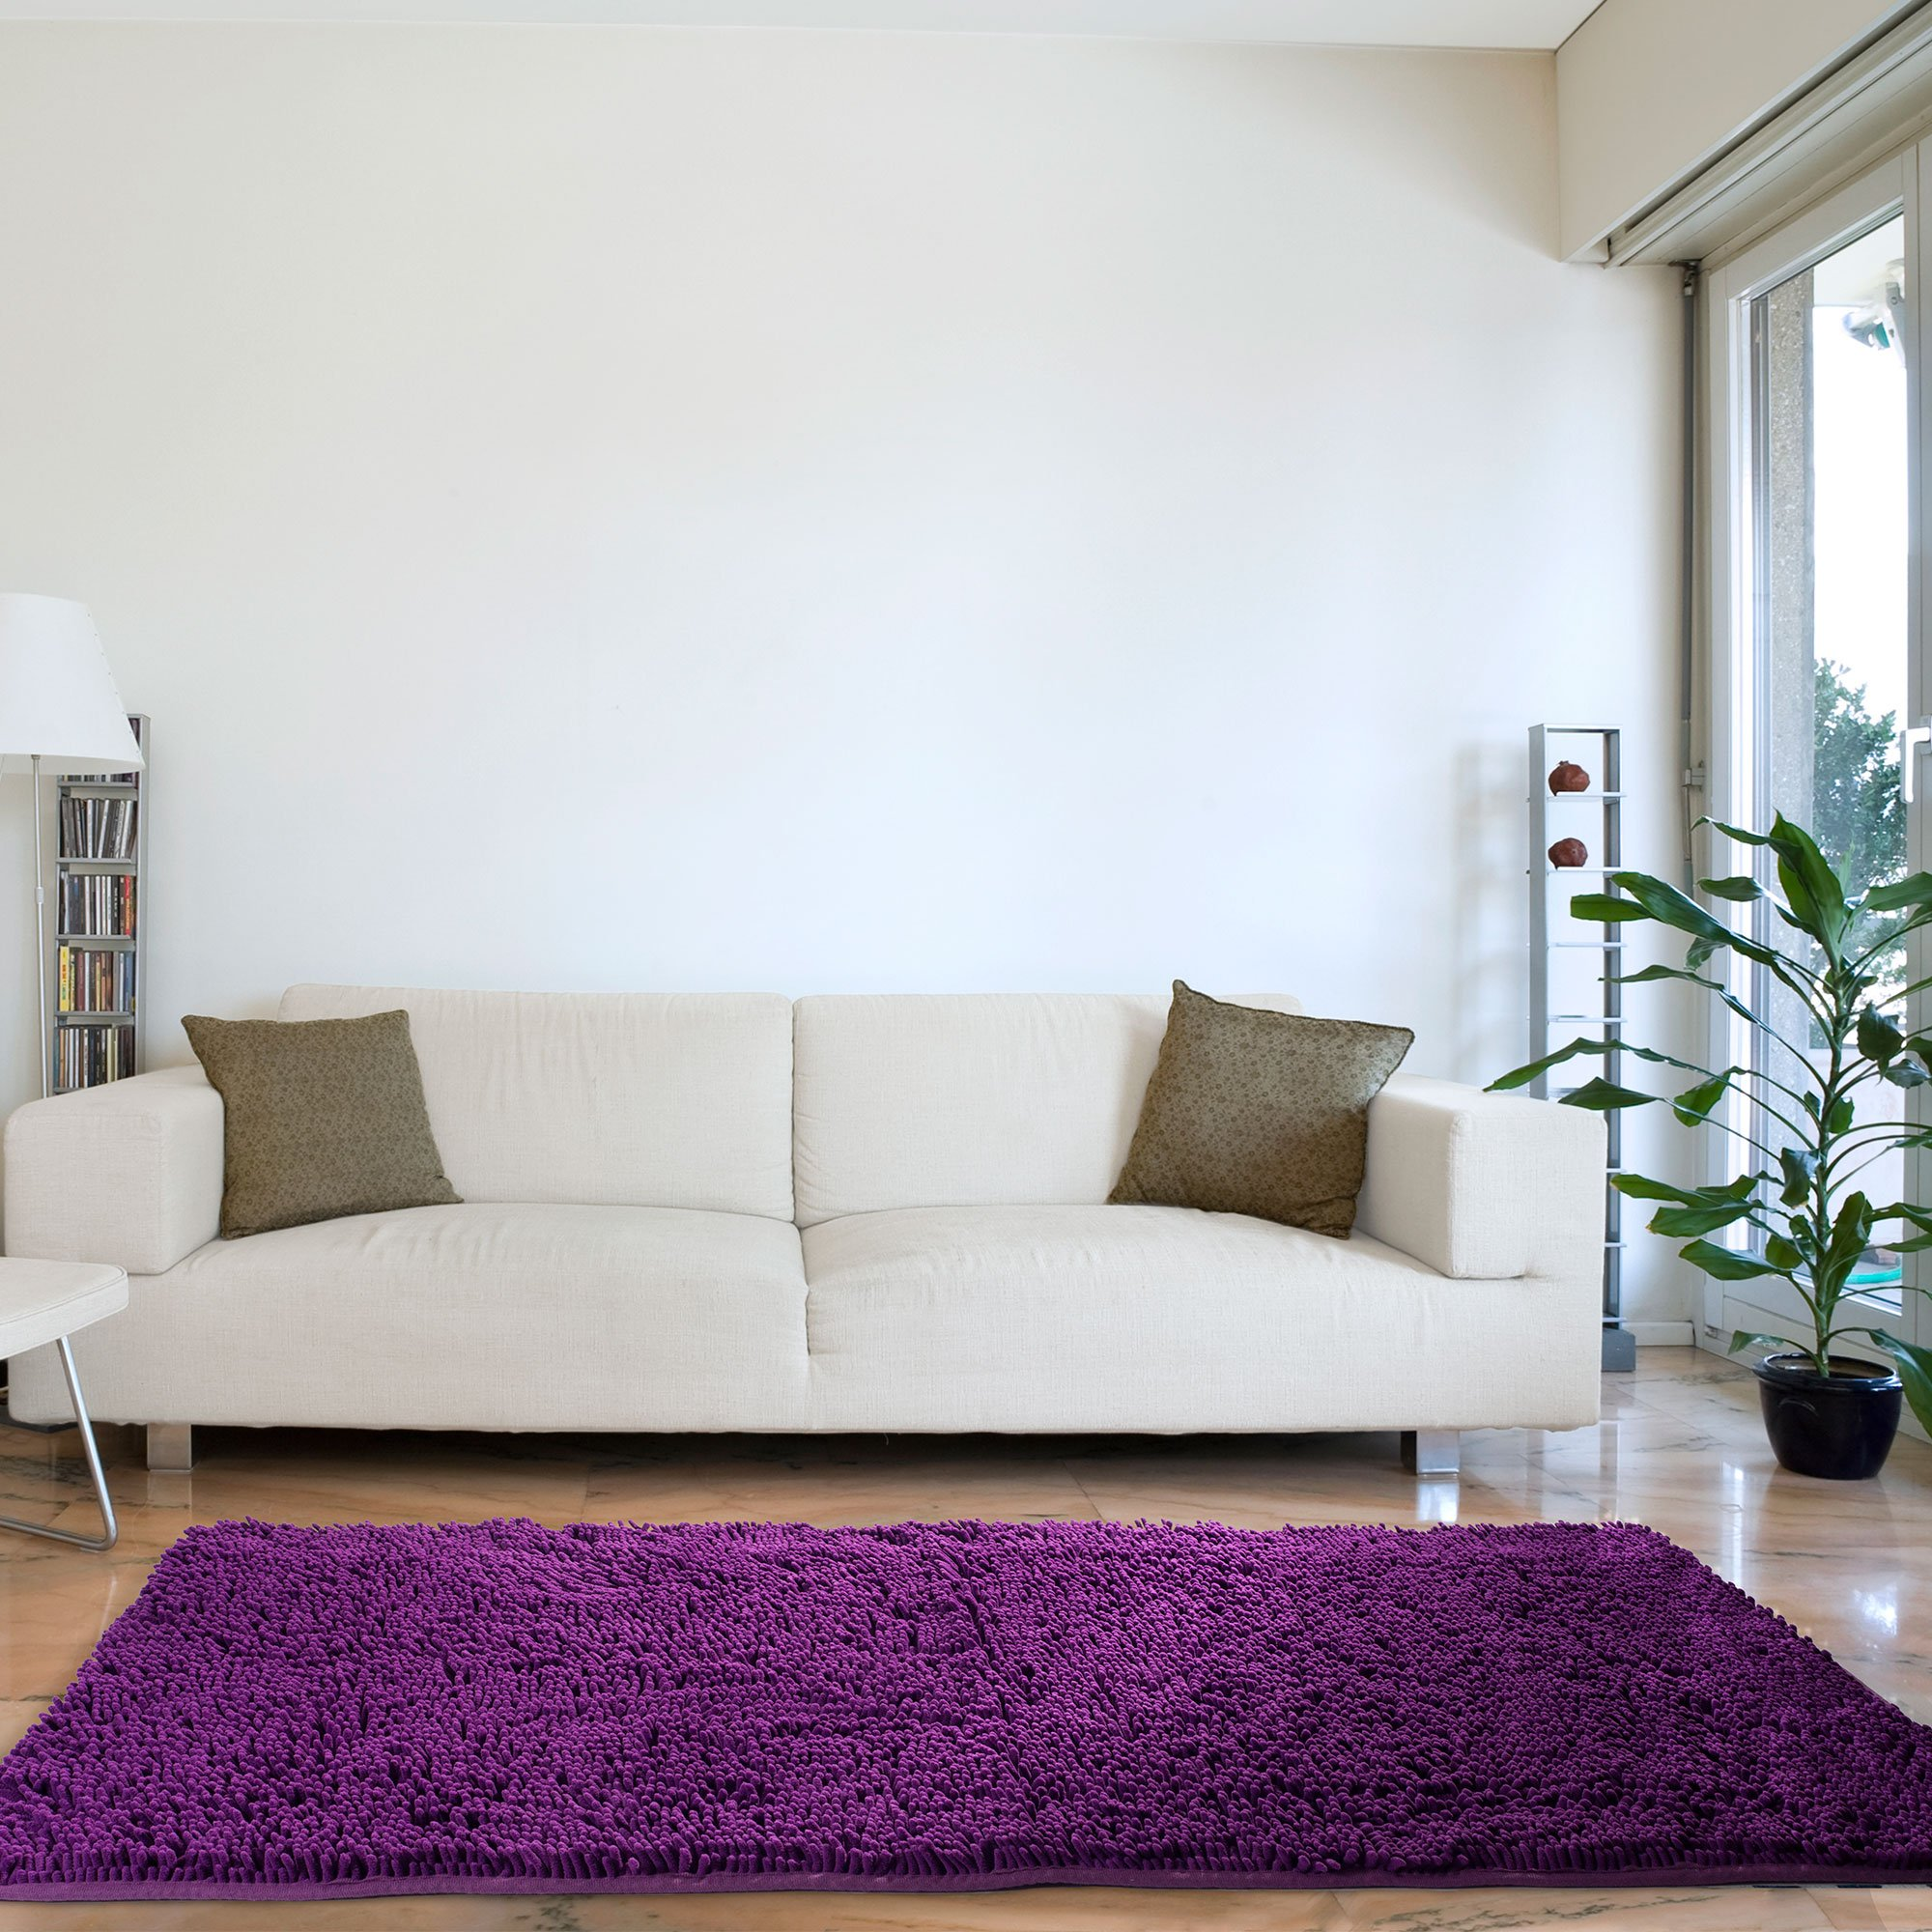 Lavish Home High Pile Carpet Shag Rug, 30 60-Inch, Purple